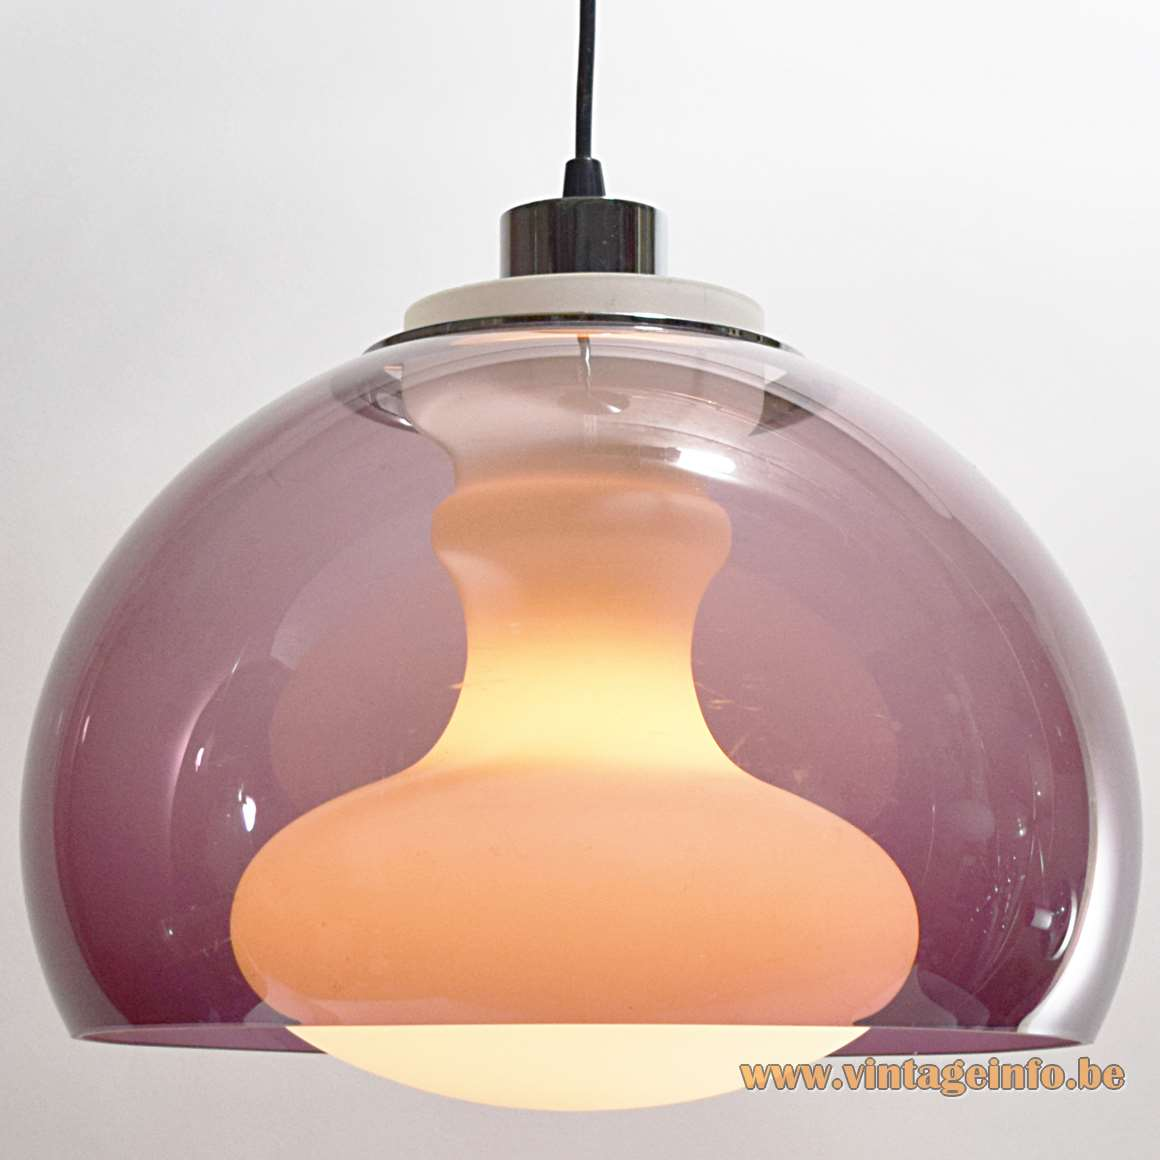 1970s Opal & Purple Pendant Lamp white glass acrylic lampshade chrome lampholder Massive 1960s MCM